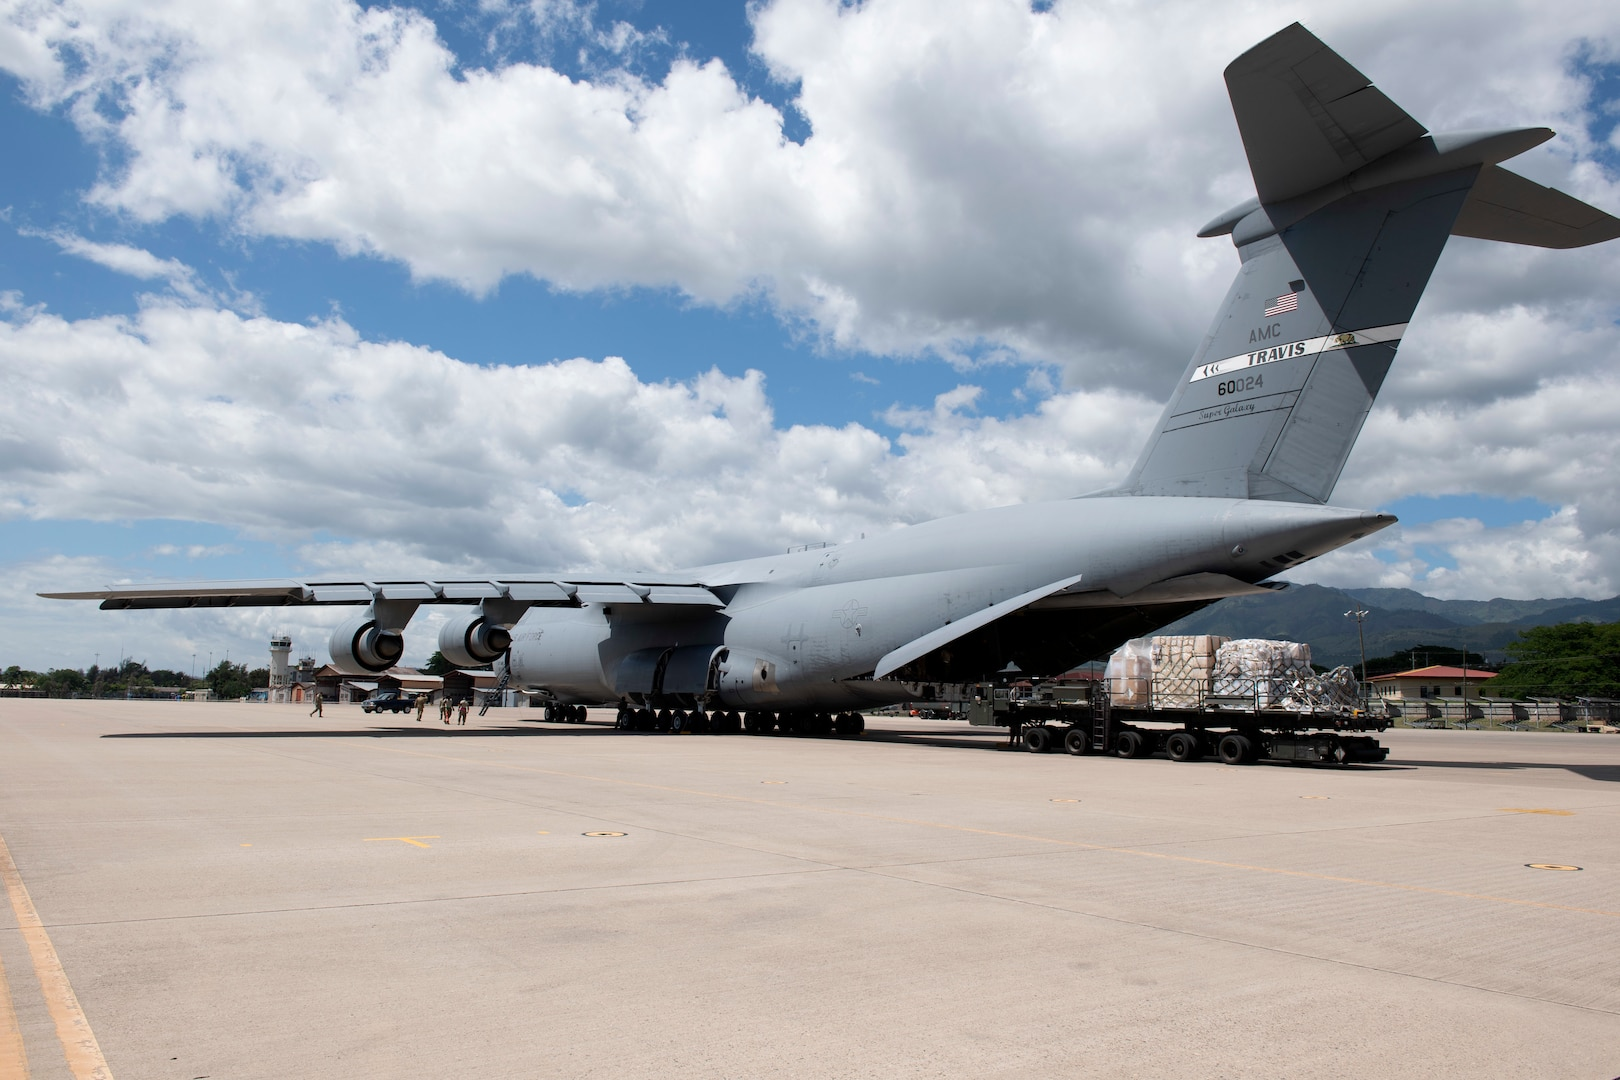 U.S. Airmen assigned to the 22nd Airlift Squadron off-load cargo from a C-5M Super Galaxy onto a K-loader July 18, 2020, at Soto Cano Air Base, Honduras. The aircrew delivered 58,000 pounds of cargo to Honduras for humanitarian relief to help with the COVID-19 pandemic, infrastructure and emergency services. (U.S. Air Force photo by Senior Airman Jonathon Carnell)